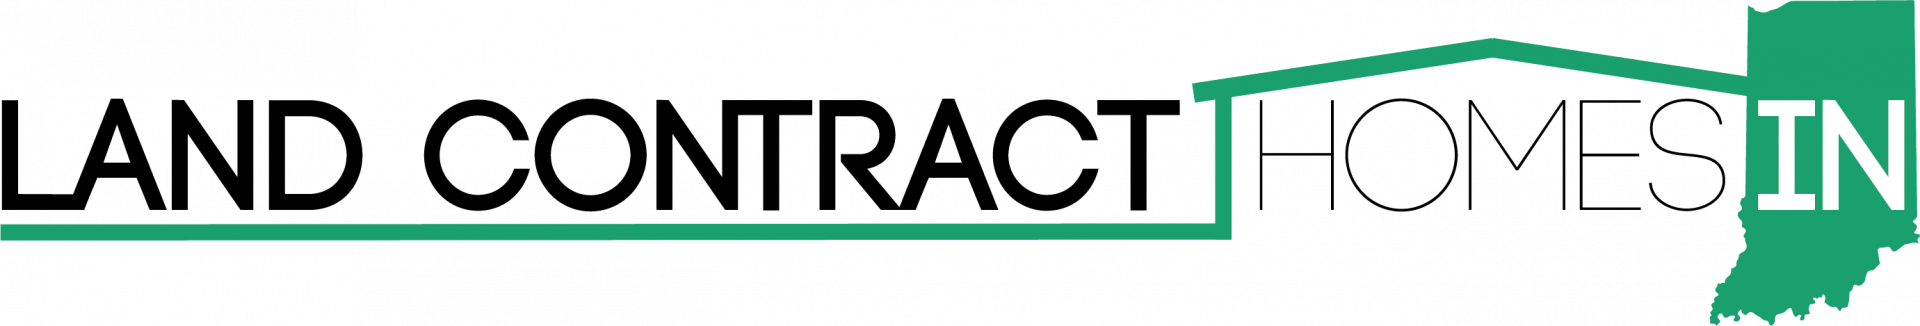 Grise Home and Property Group logo